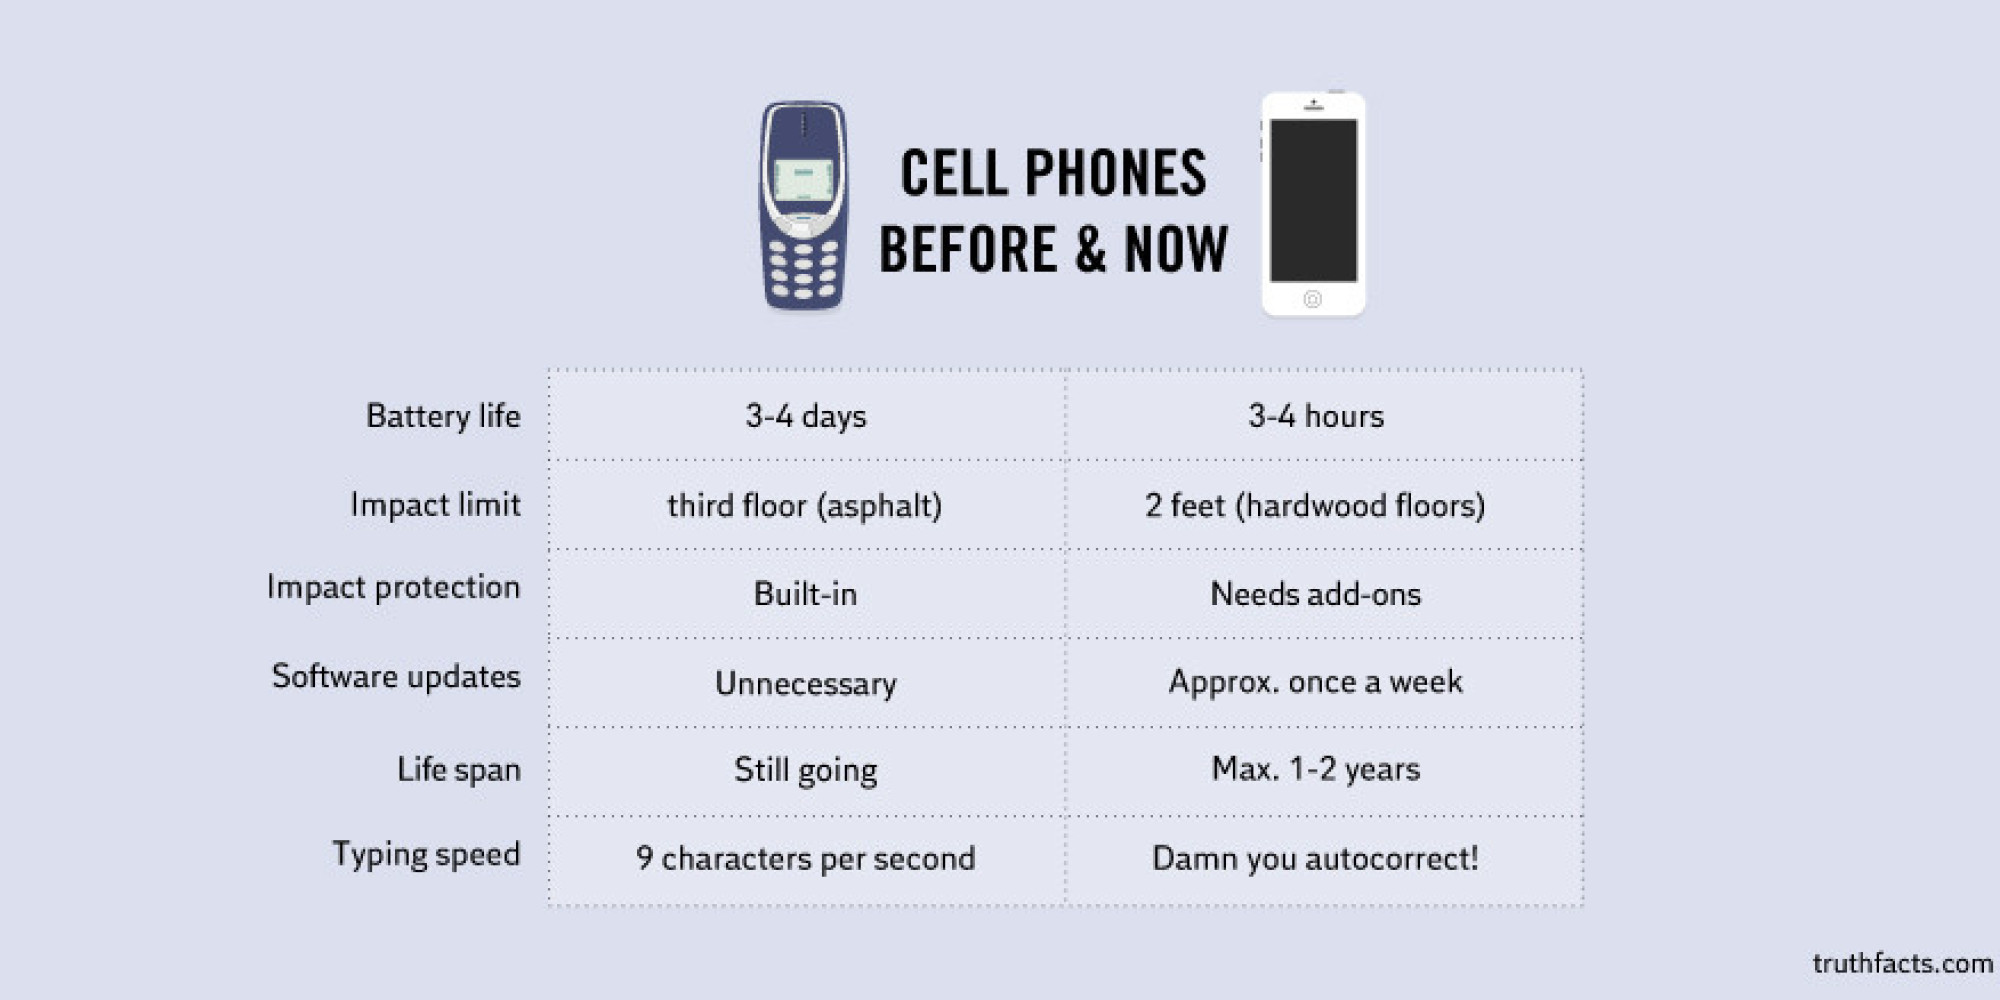 cell phone fun facts This Will Make You Long For Your 1990s Cell Phone | HuffPost